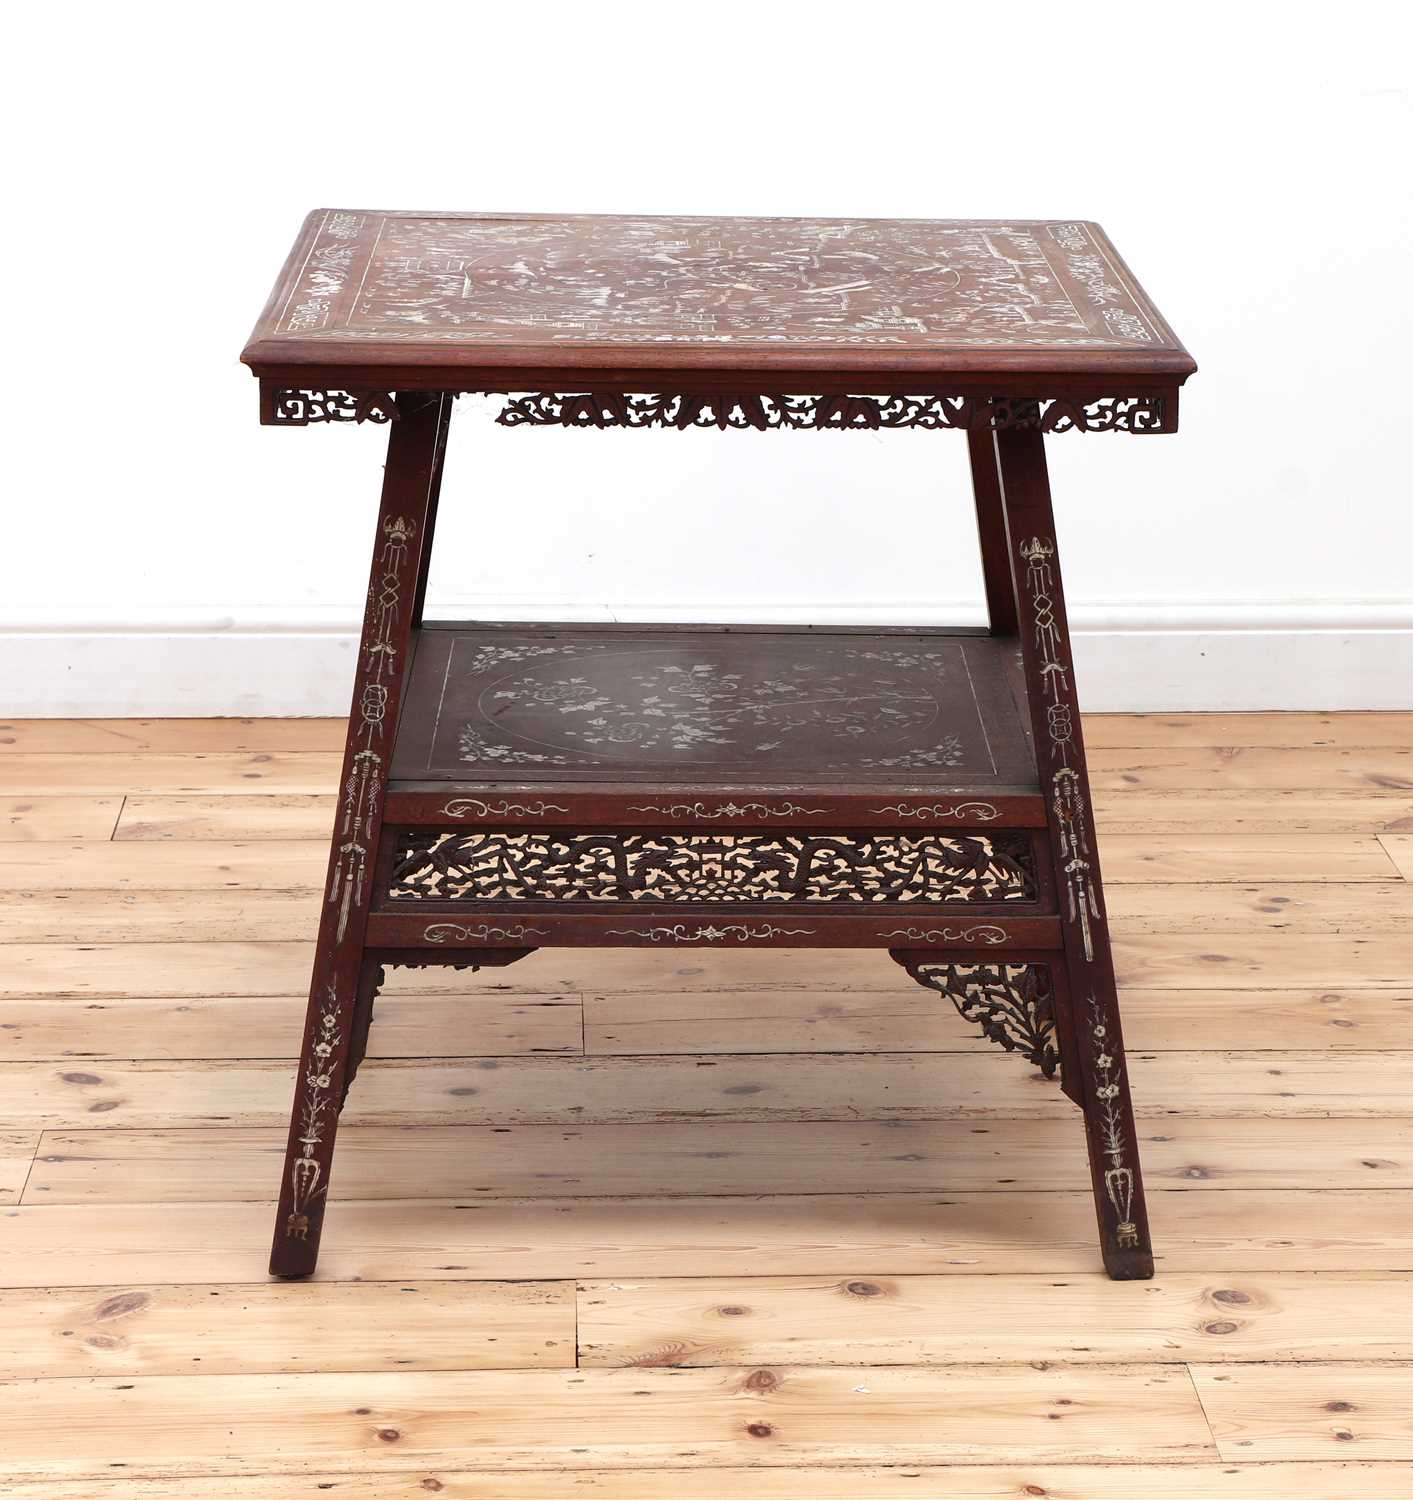 A Chinese hardwood and ivory inlaid occasional table, - Image 4 of 10